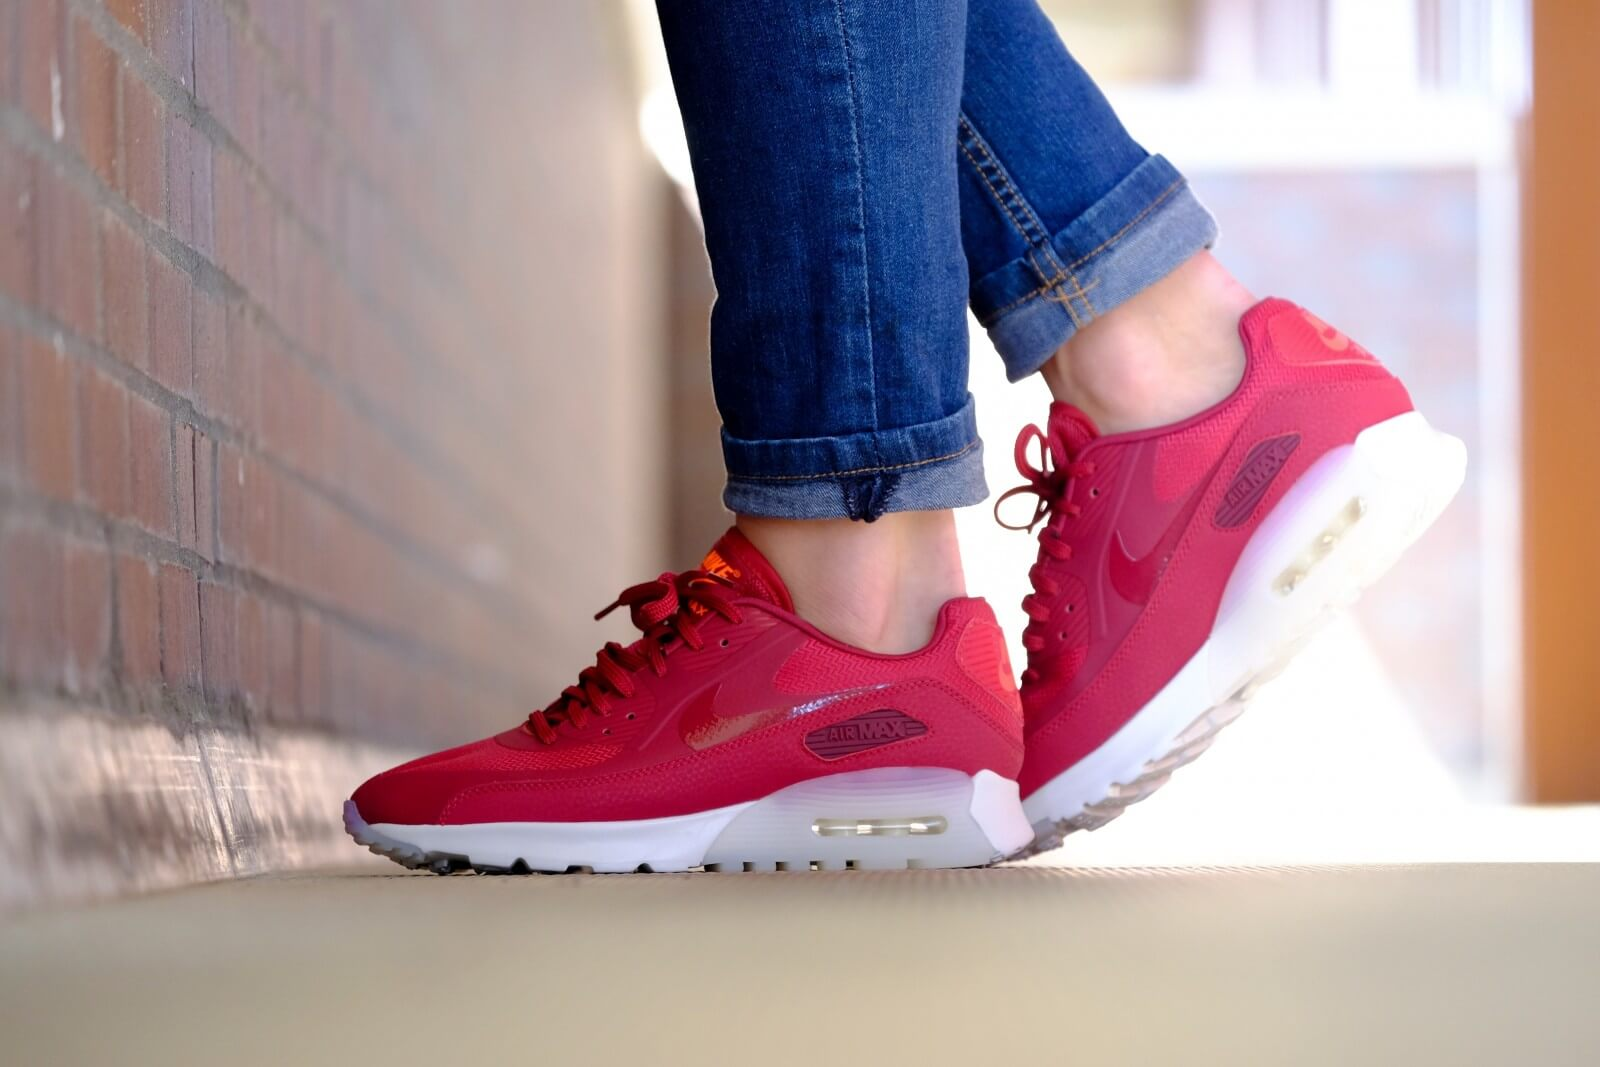 Nike WMNS Air Max 90 Ultra Noble Red Summit White 845110 600